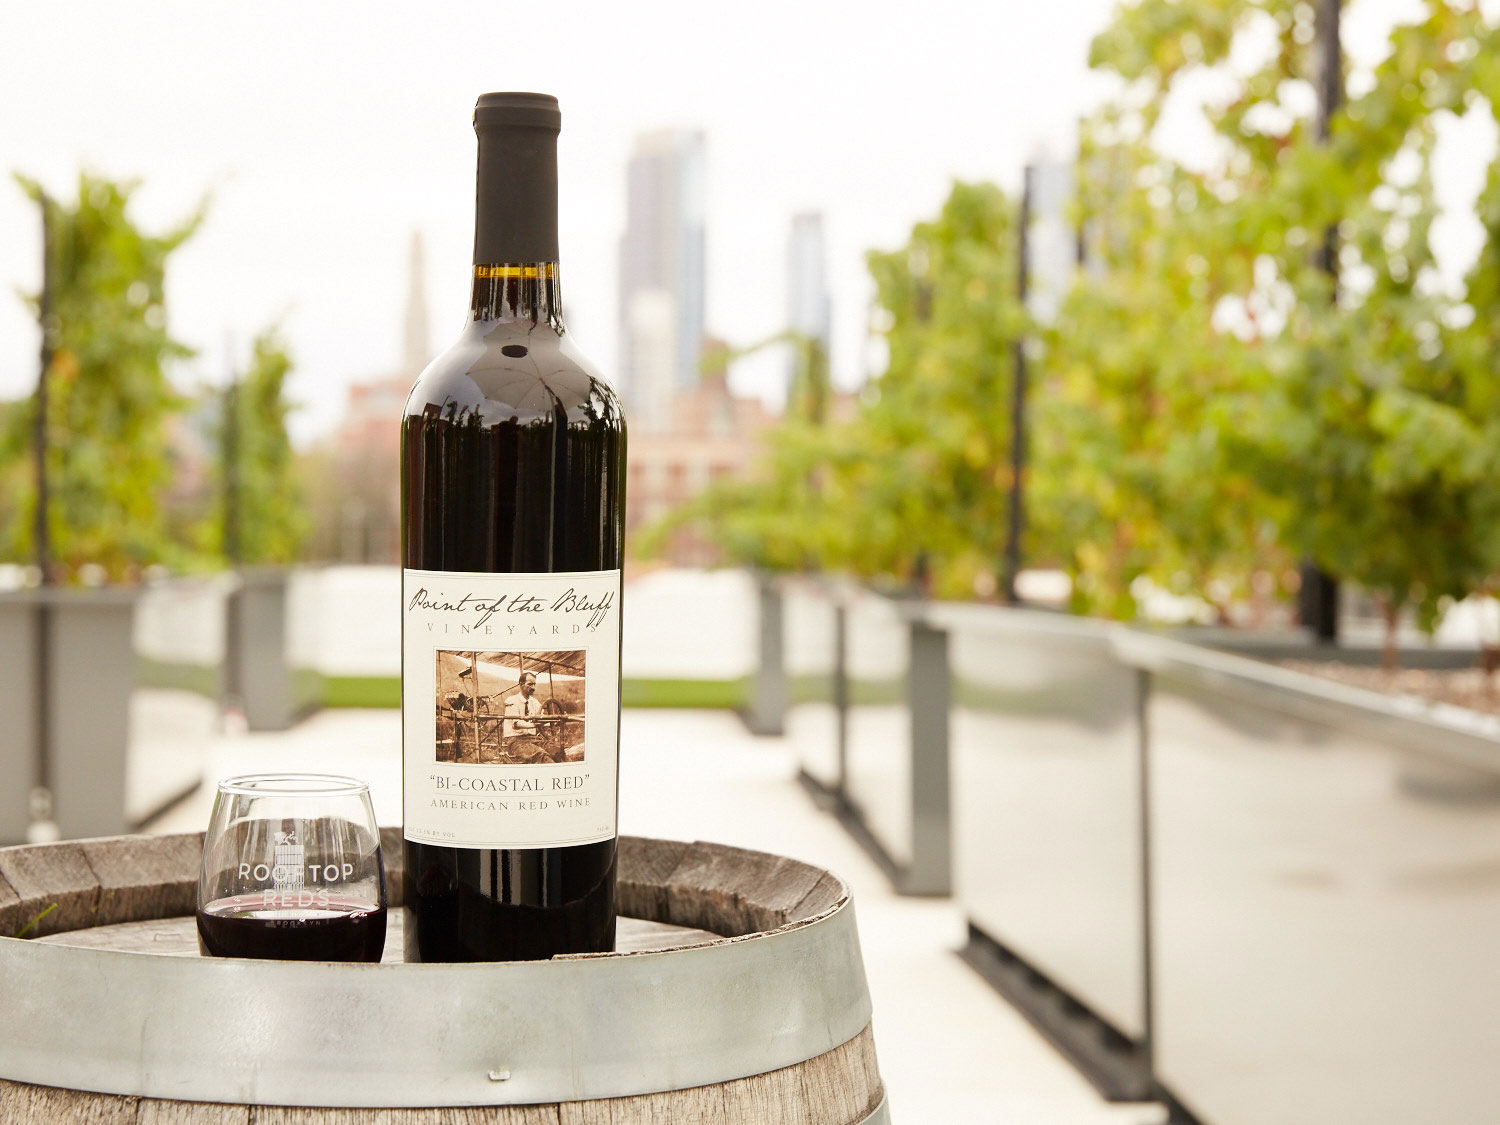 Bottle of red wine on top of a barrel at the Rooftop Reds location in Brooklyn.